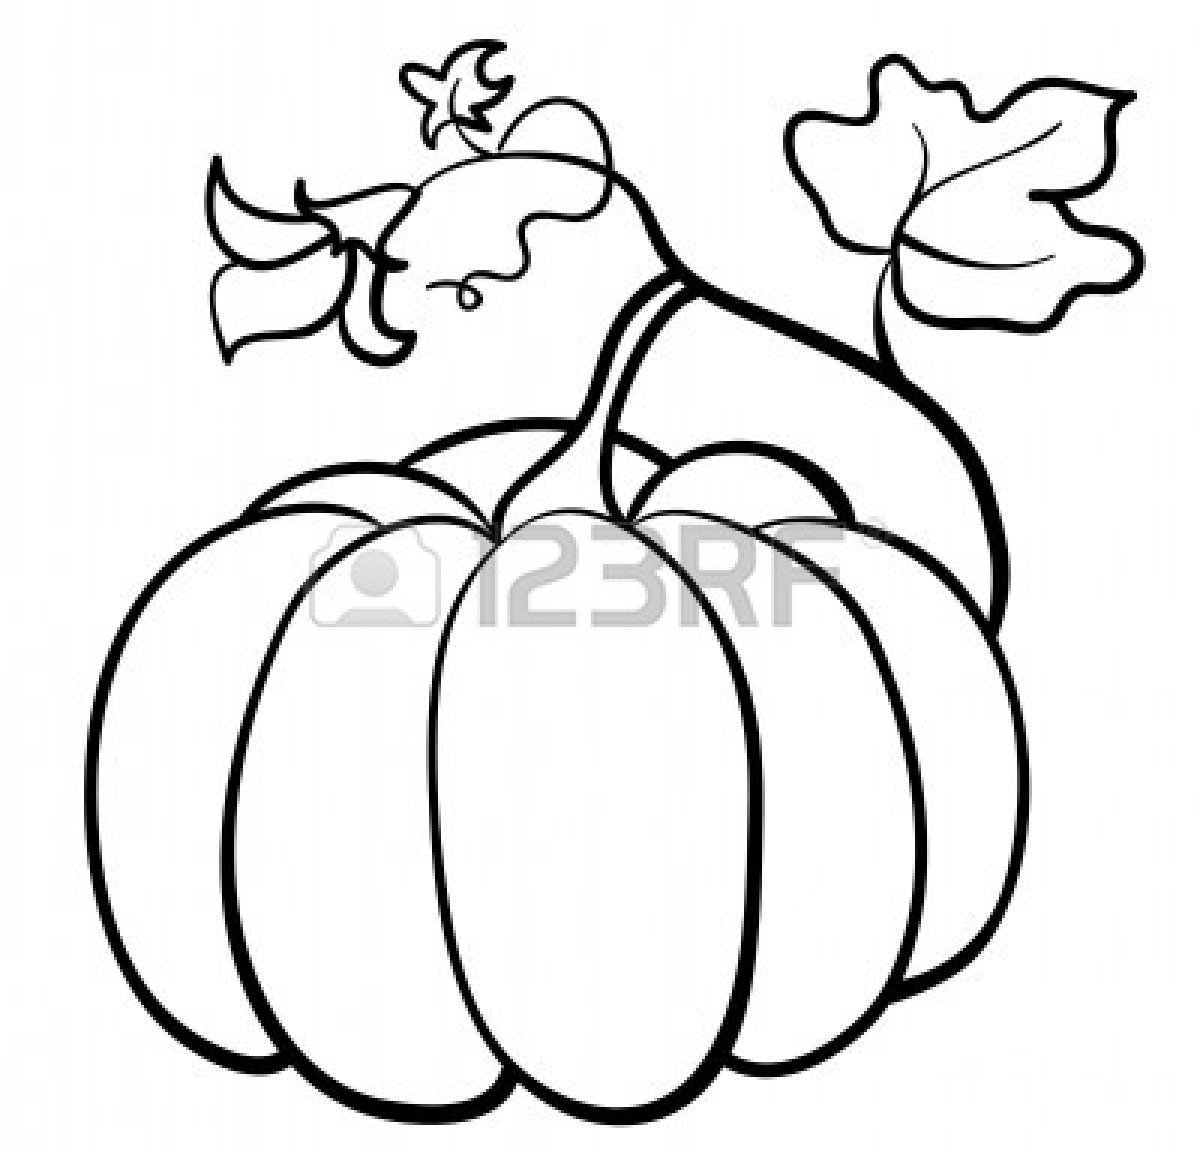 1200x1152 Vegetable Clipart Sketch